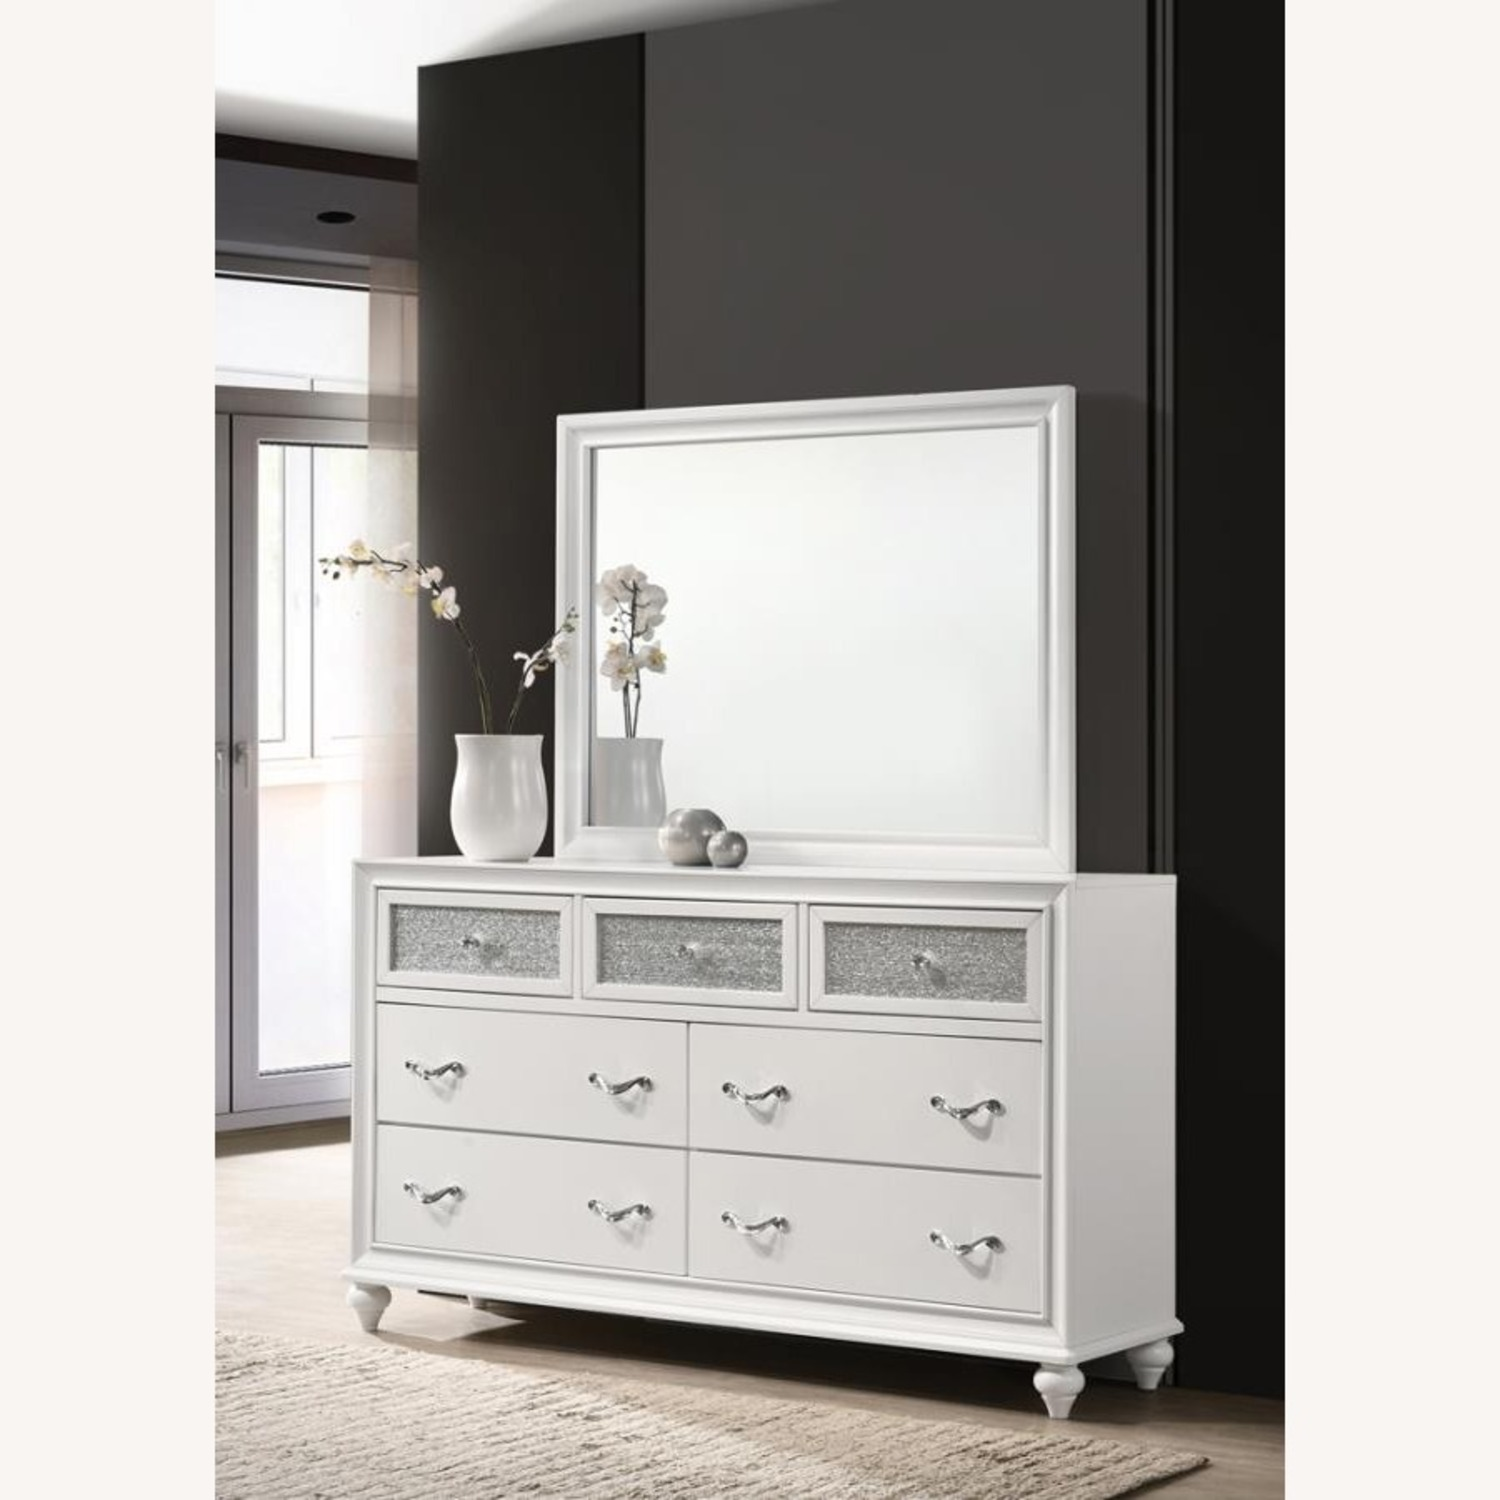 Mirror Crafted In White Wood Finish - image-3